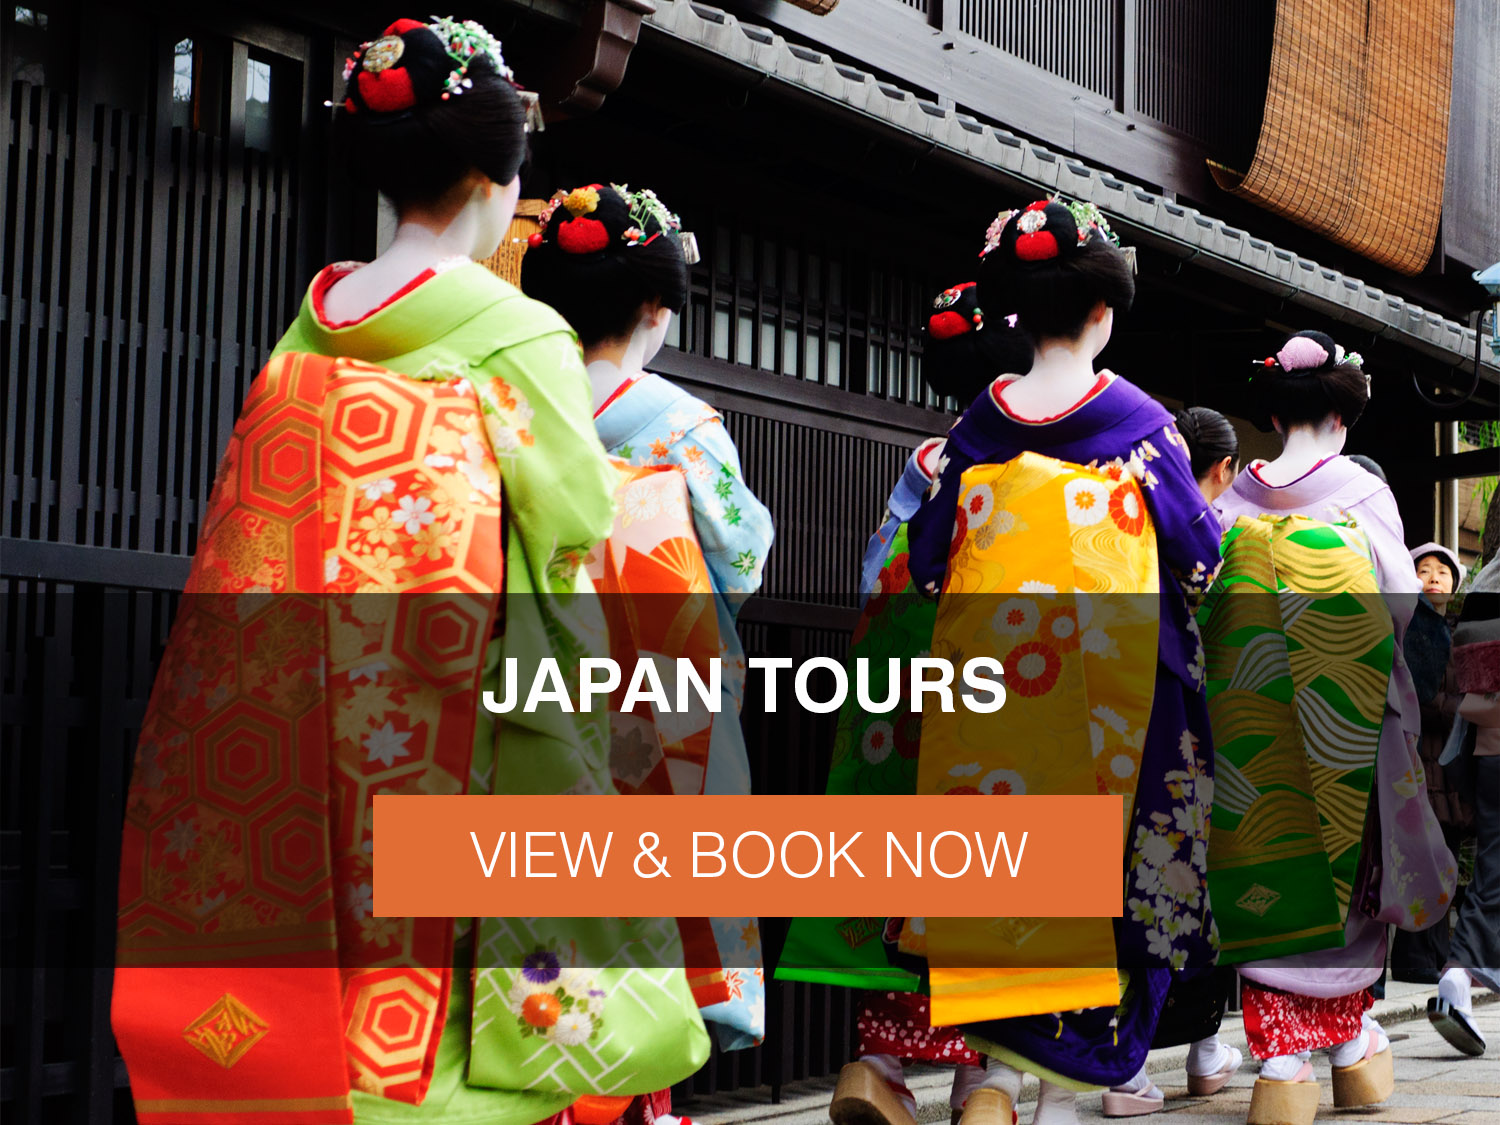 Japan Tours Button Home Page.jpg